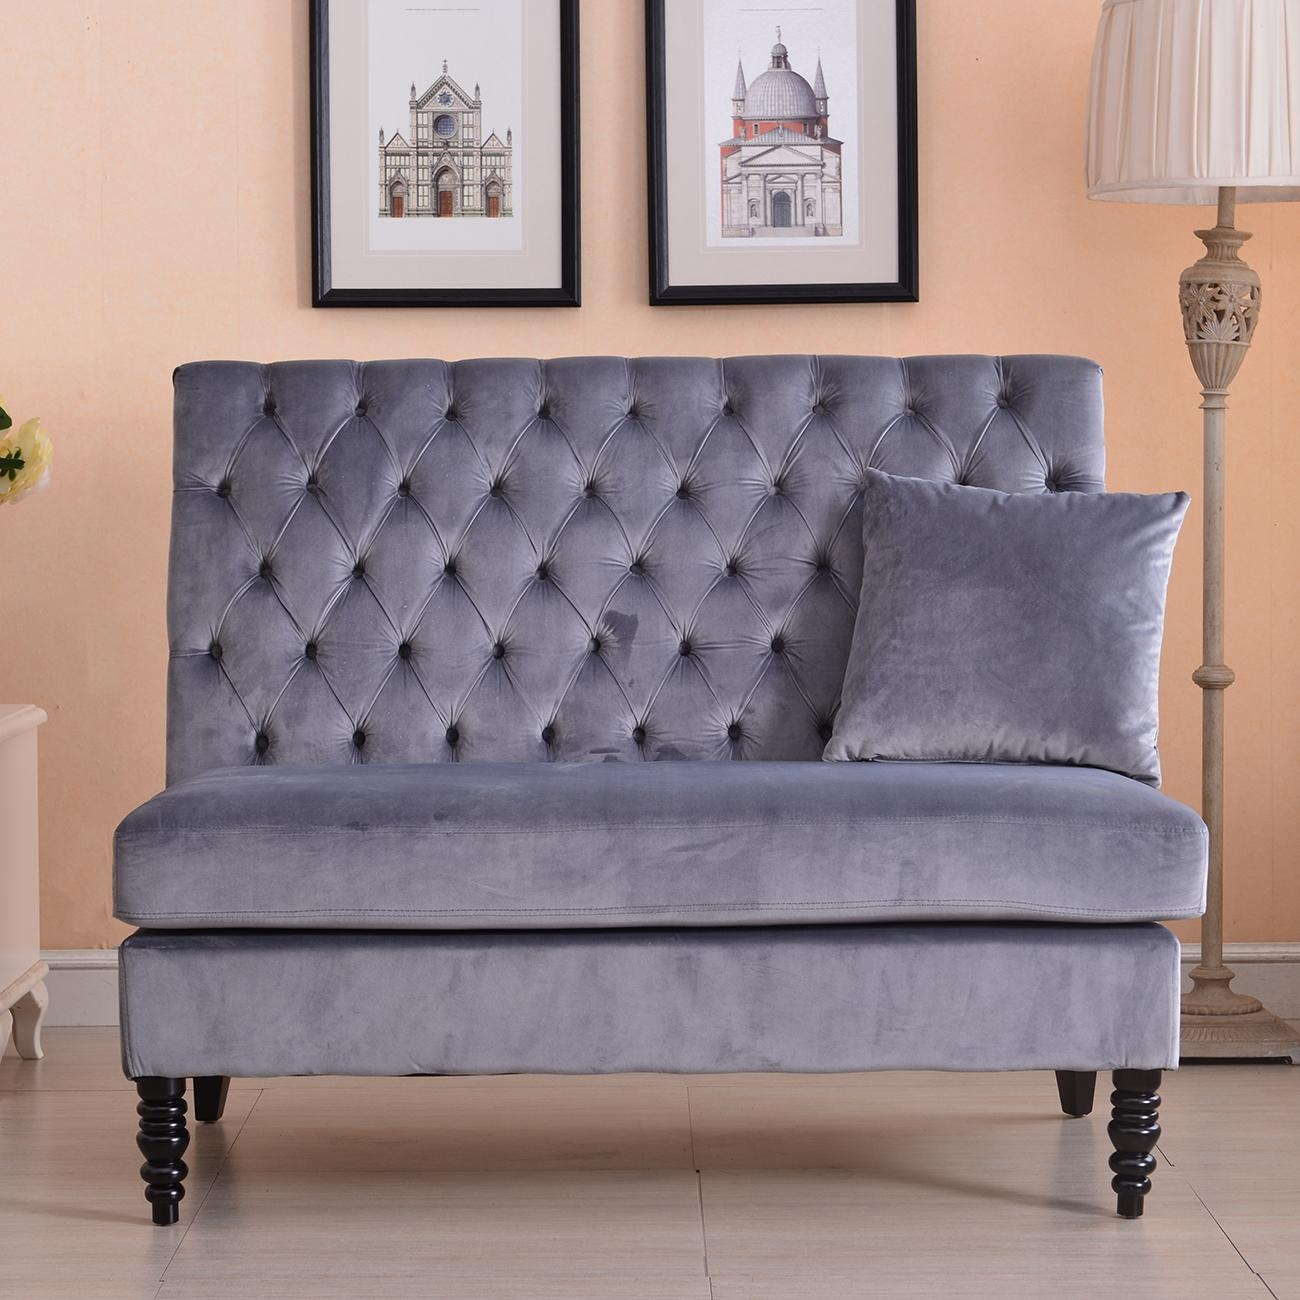 New Modern Tufted Settee Bedroom Bench Sofa High Back Cushion Seat Throughout Bedroom Bench Sofas (Image 18 of 20)